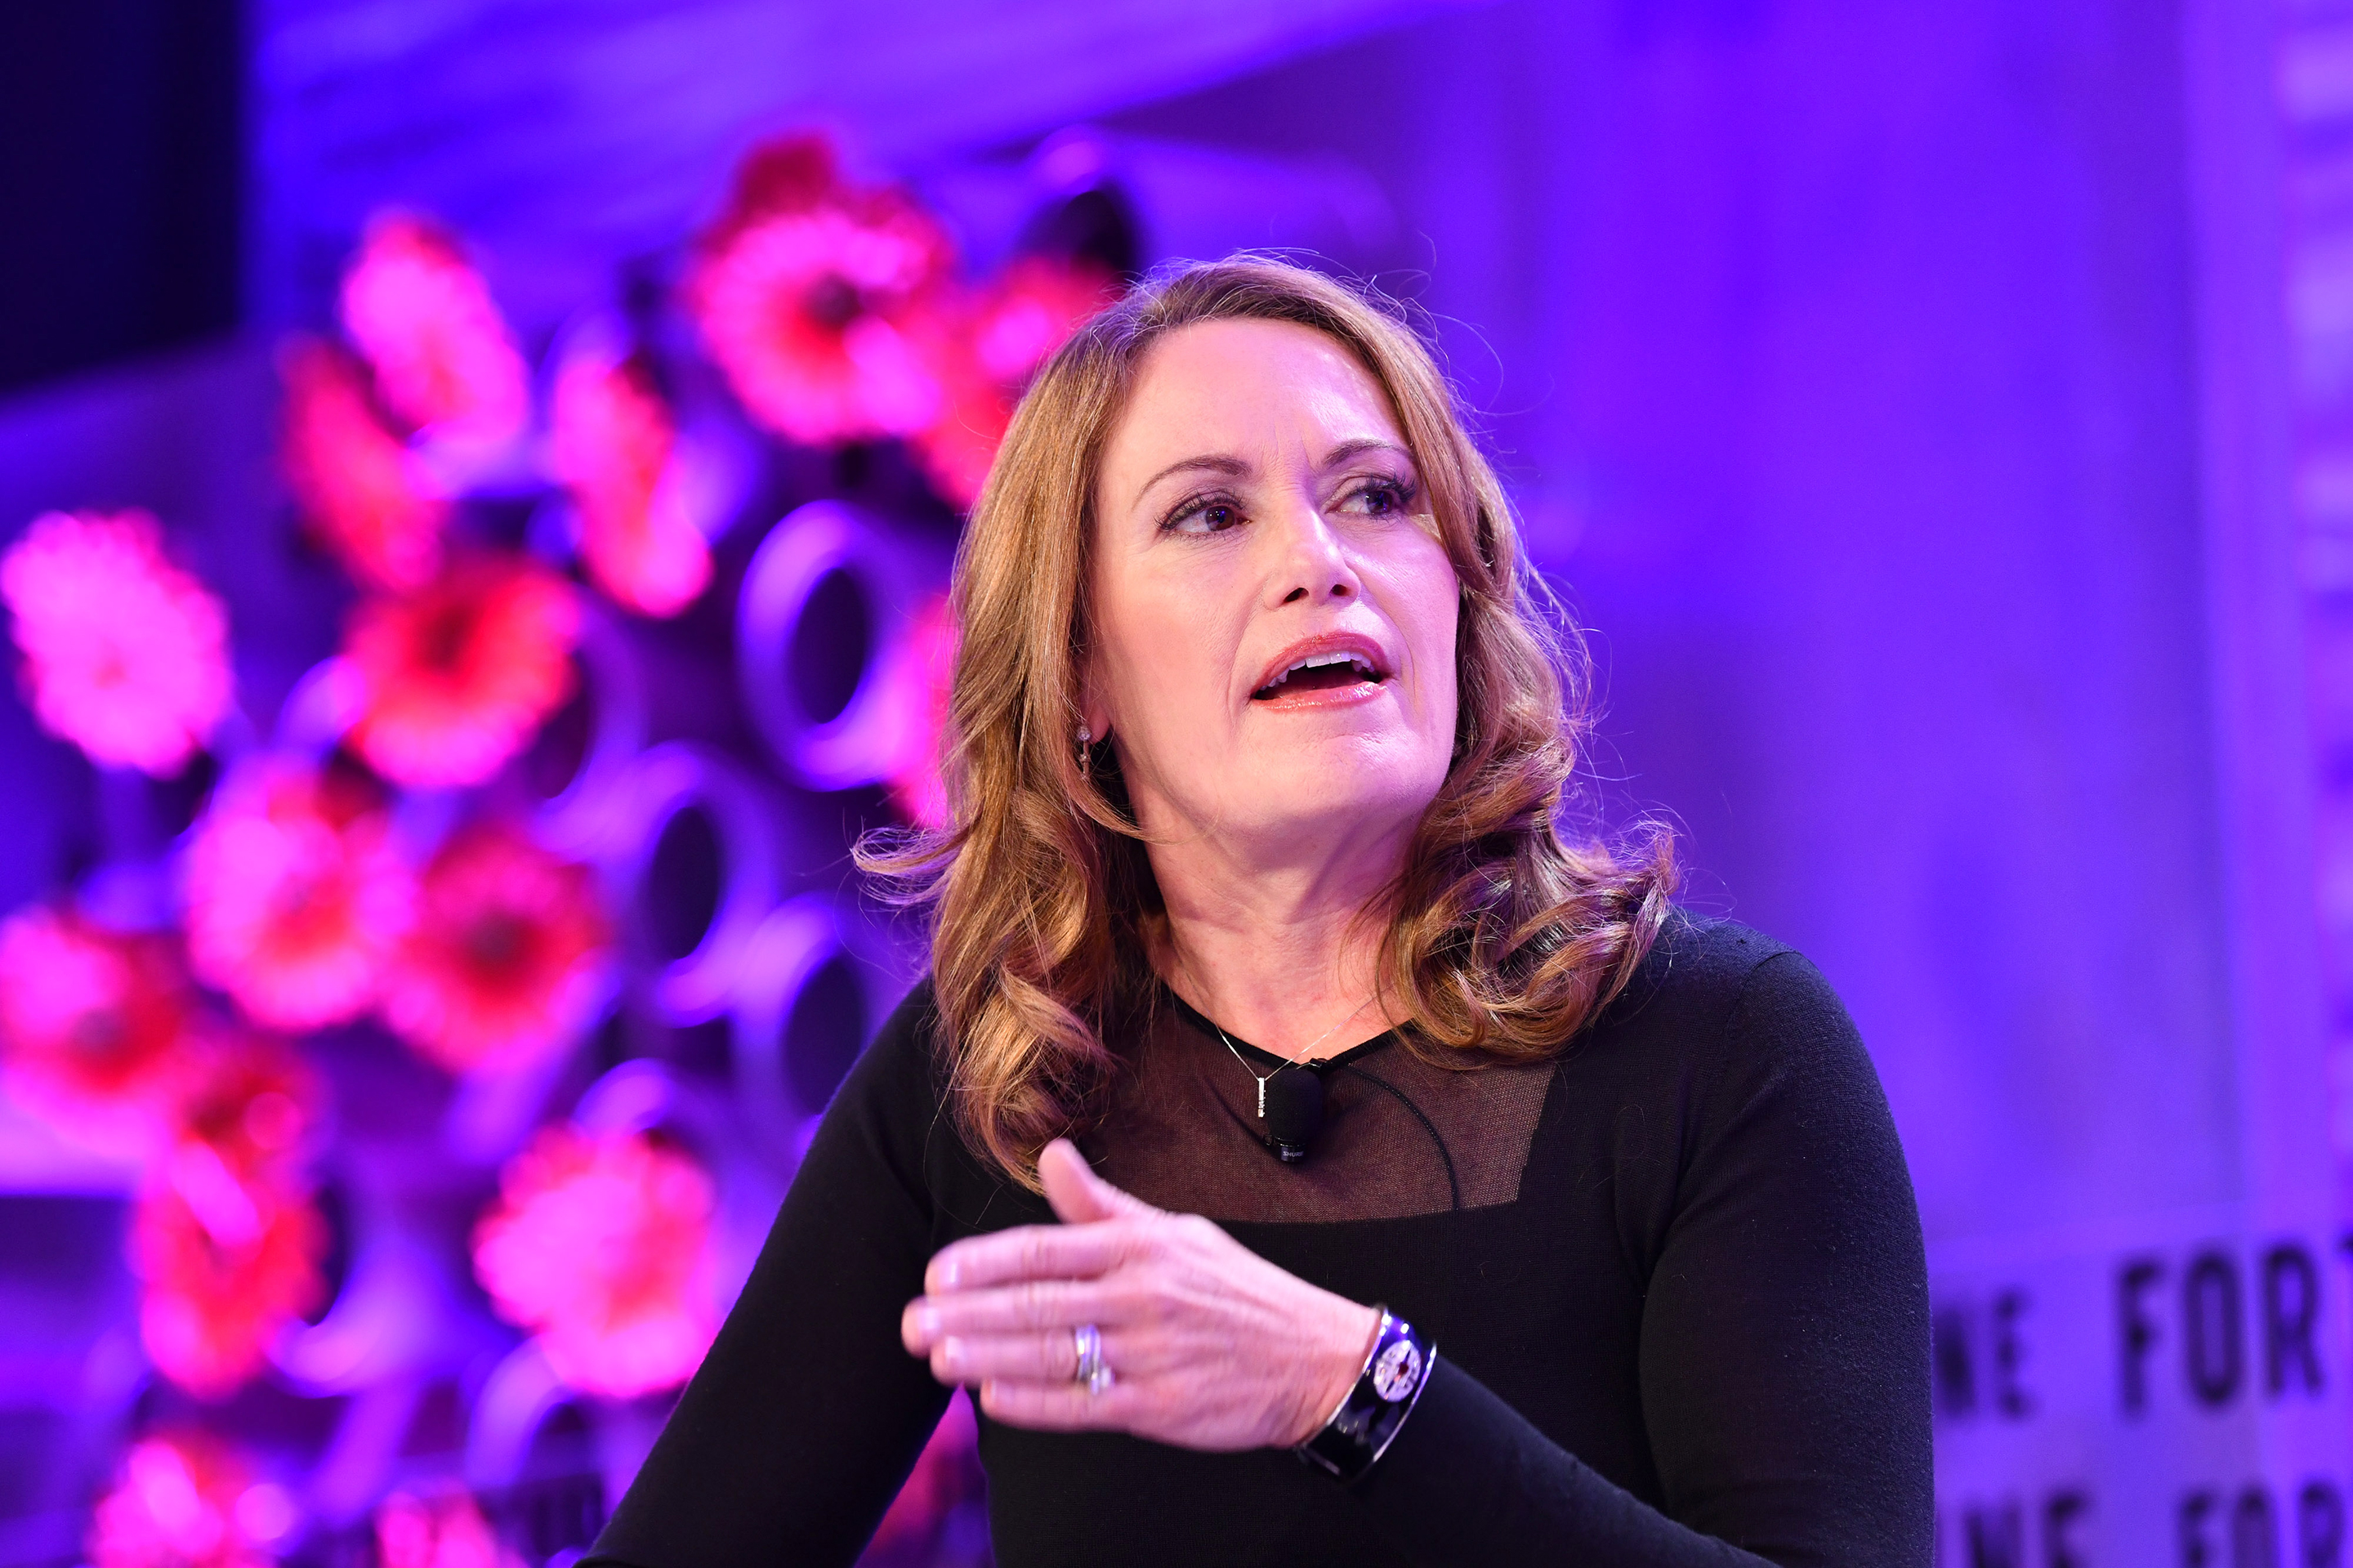 Magic Leap's Peggy Johnson long aspired to be a CEO. Too few women set that intention thumbnail